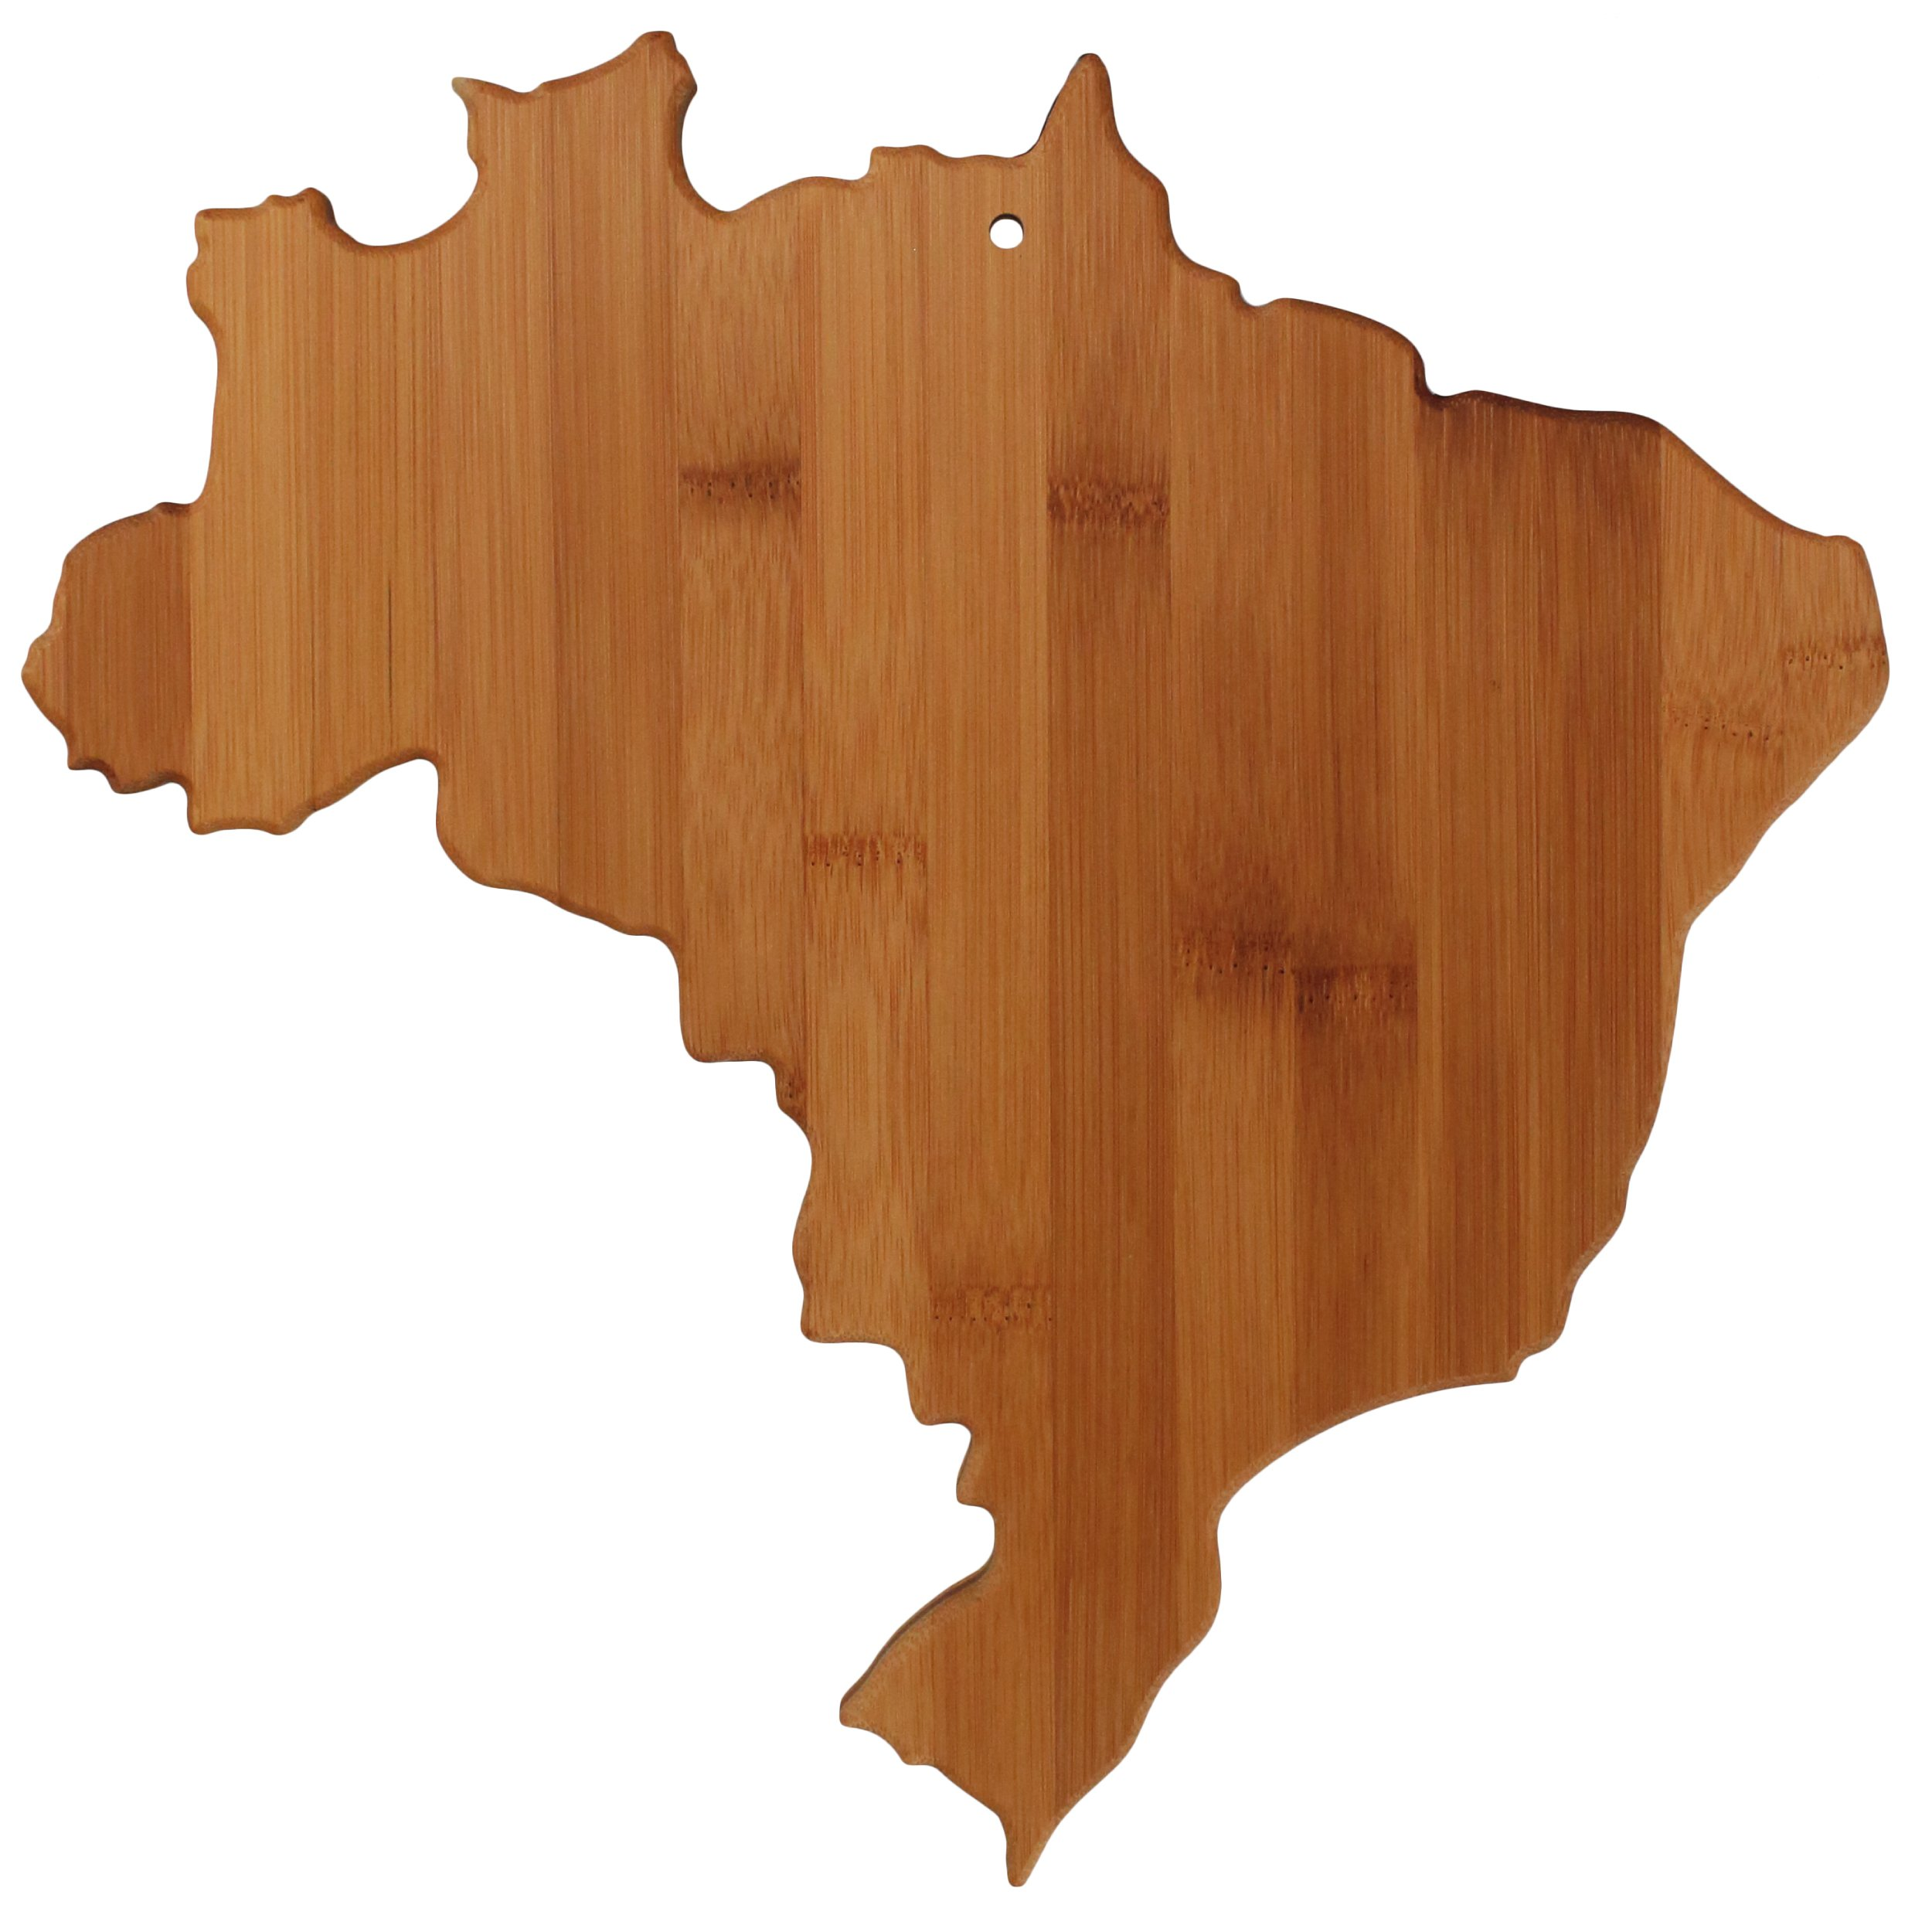 Totally Bamboo Brazil Shaped Bamboo Serving and Cutting Board